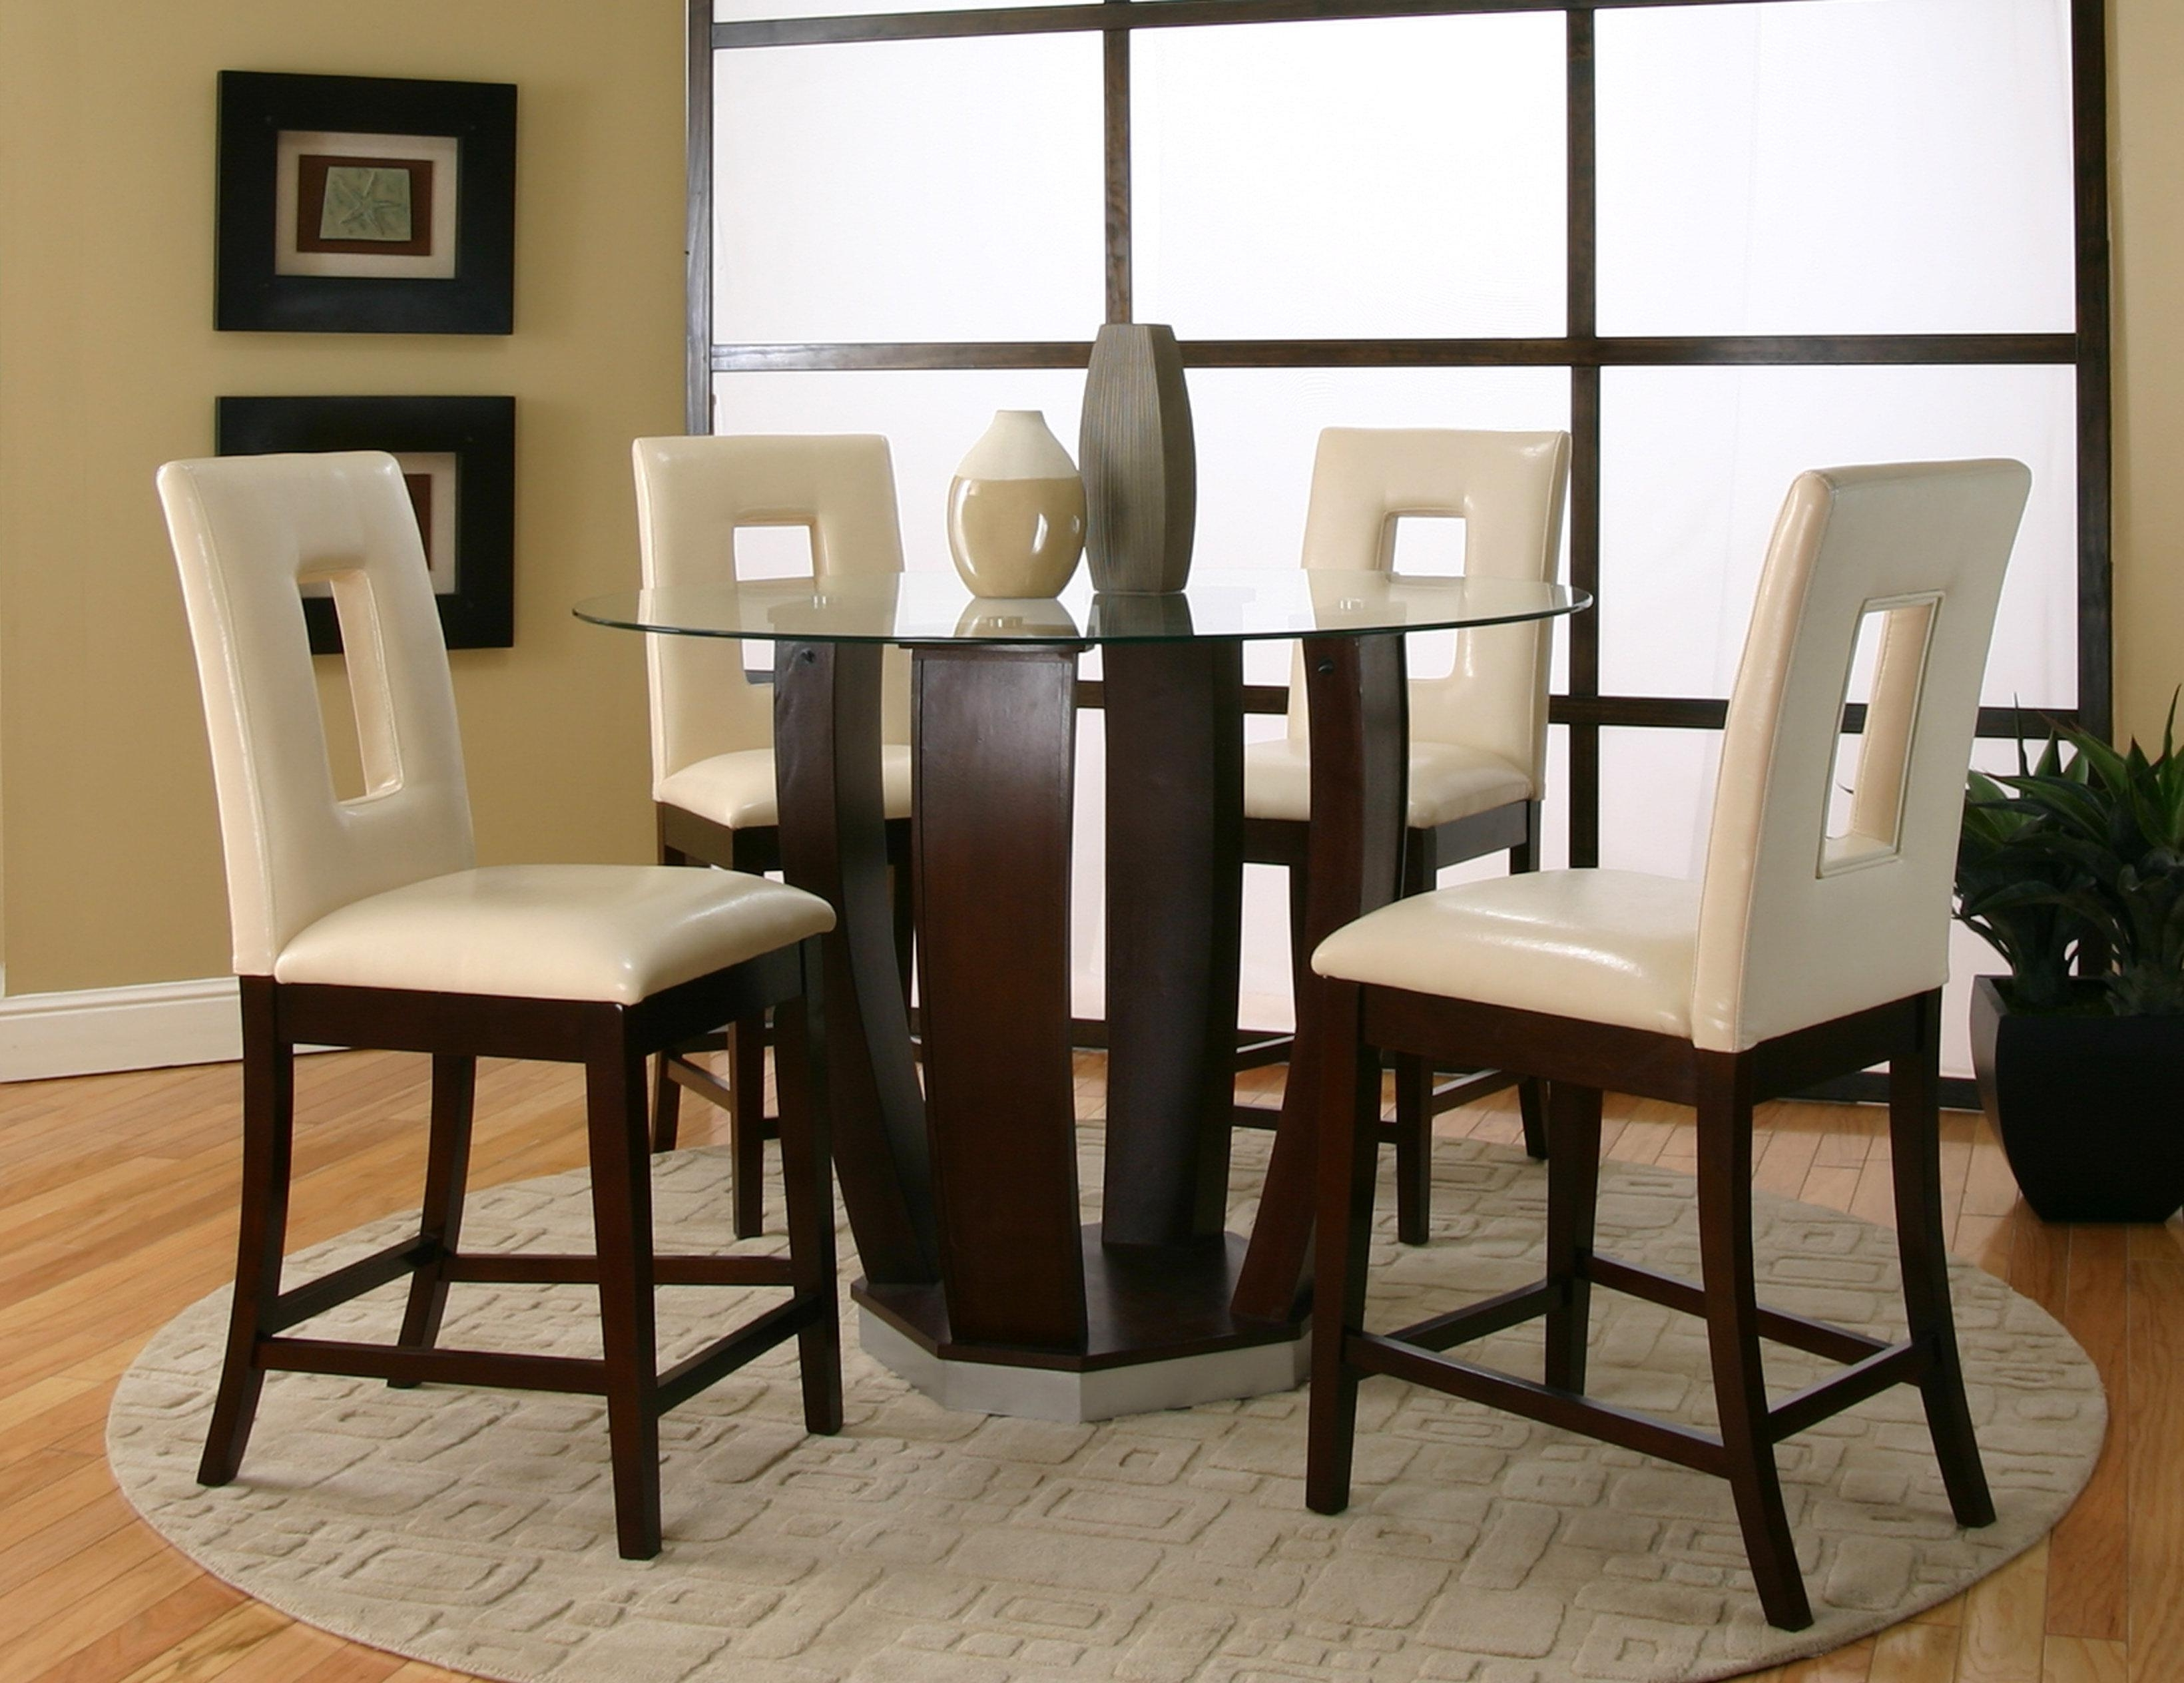 Popular Cramco, Inc Contemporary Design – Emerson Tempered Glass Top Pub For Glass Dining Tables Sets (View 10 of 25)